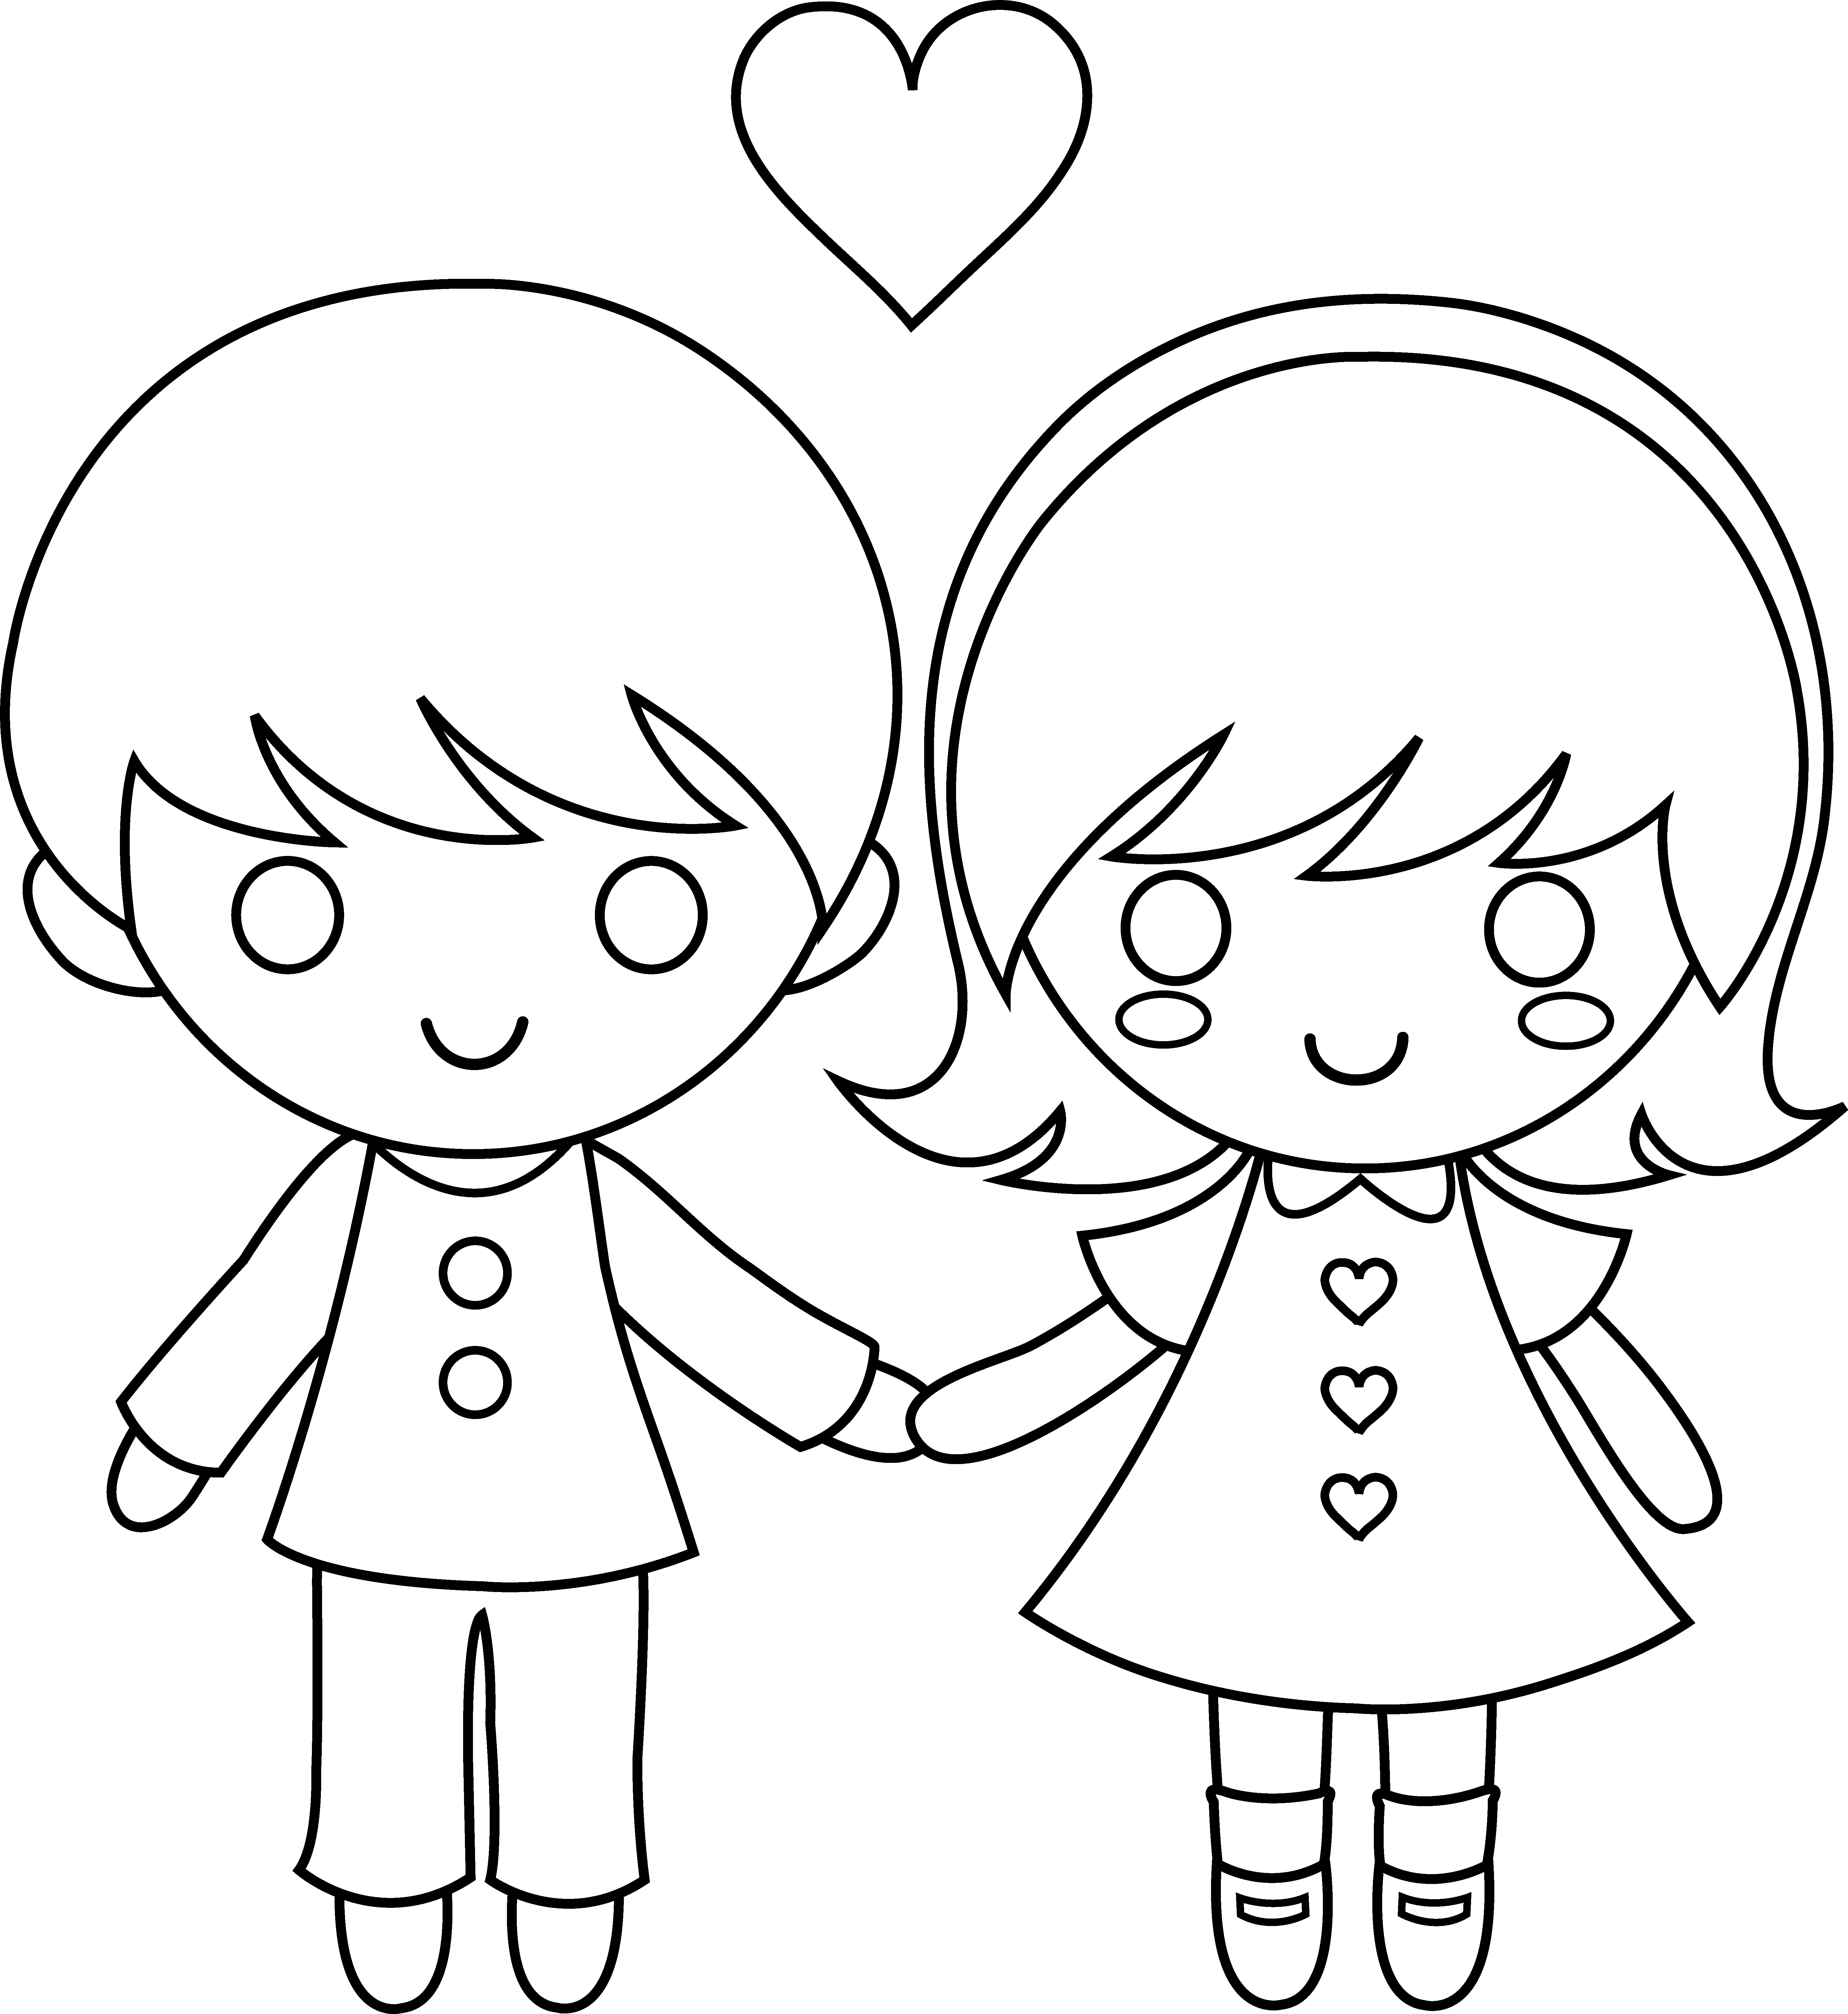 Happy Valentines Day Clip Art Black And White Valentine Kids Base Color